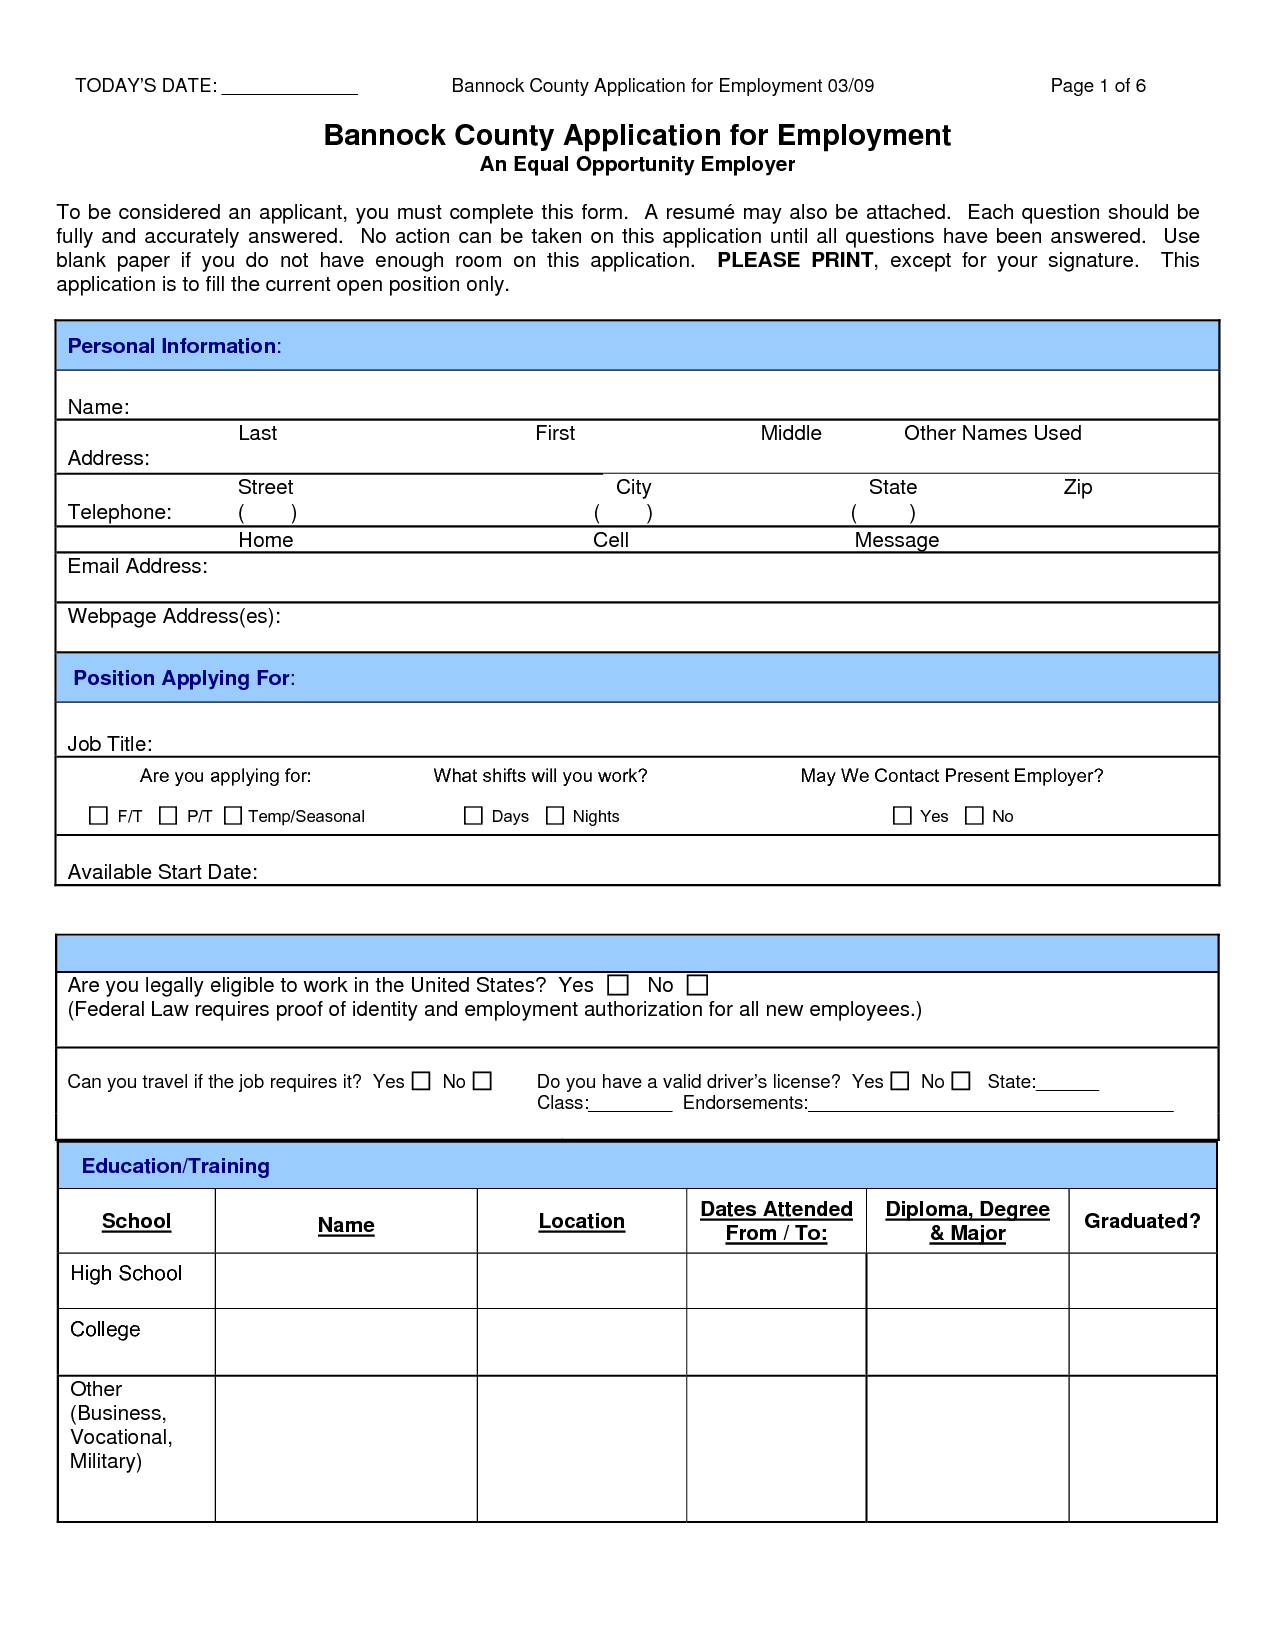 Superieur Sample Job Application Form PDF Bannock Country Application For Employment